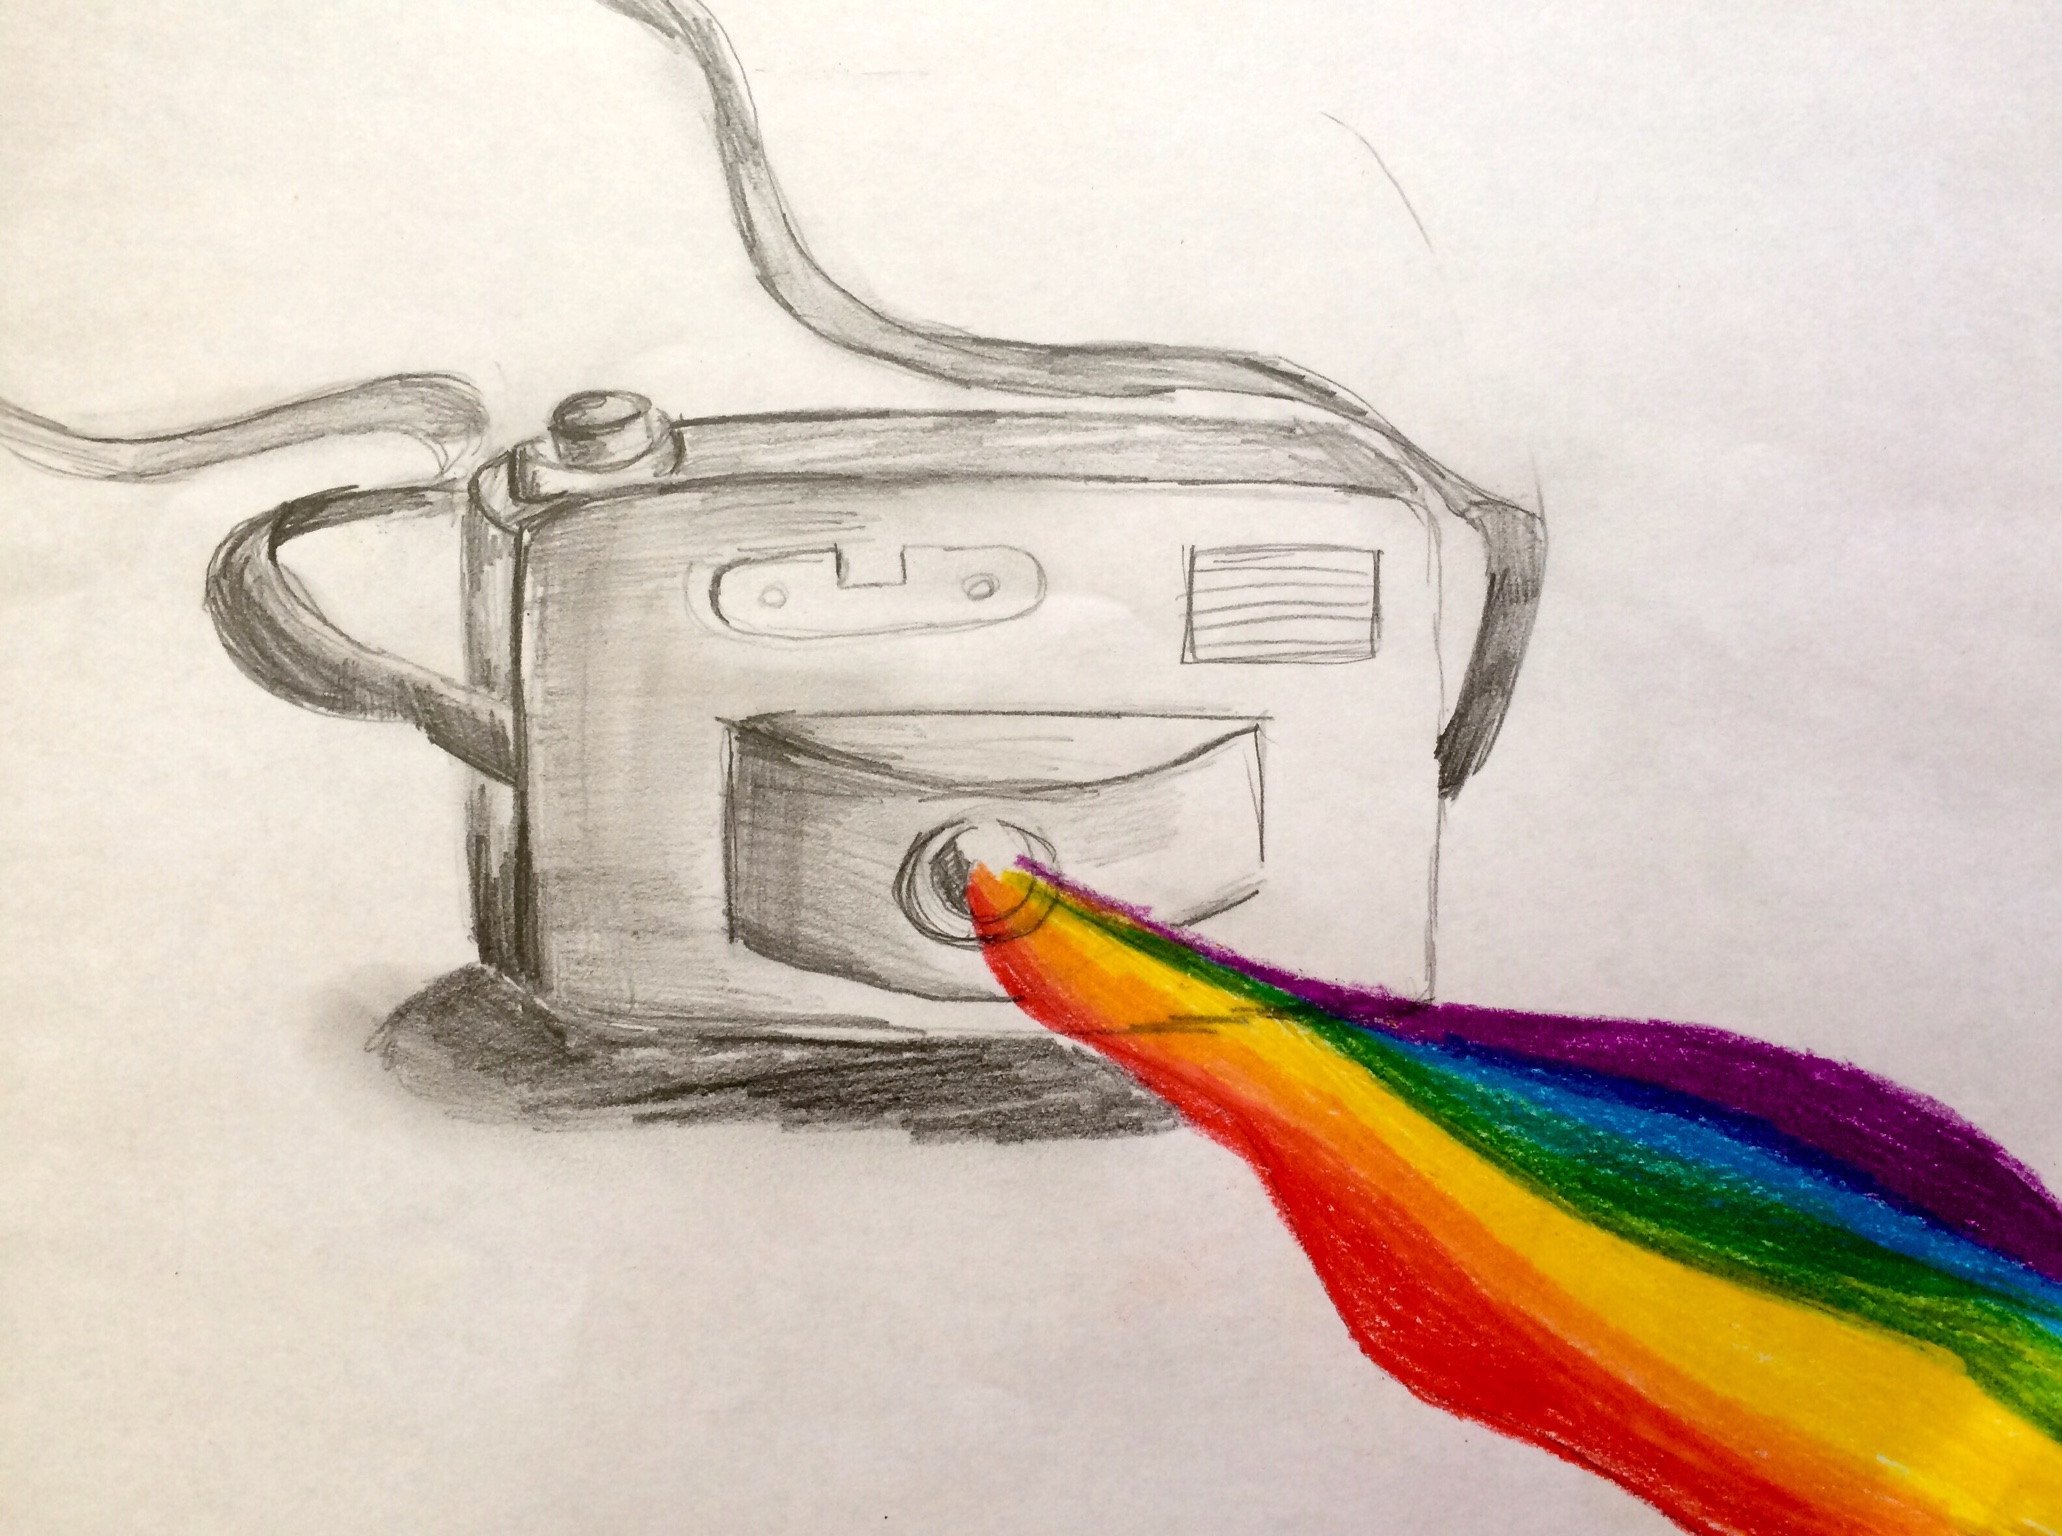 drawing of camera with rainbow coming out of lens